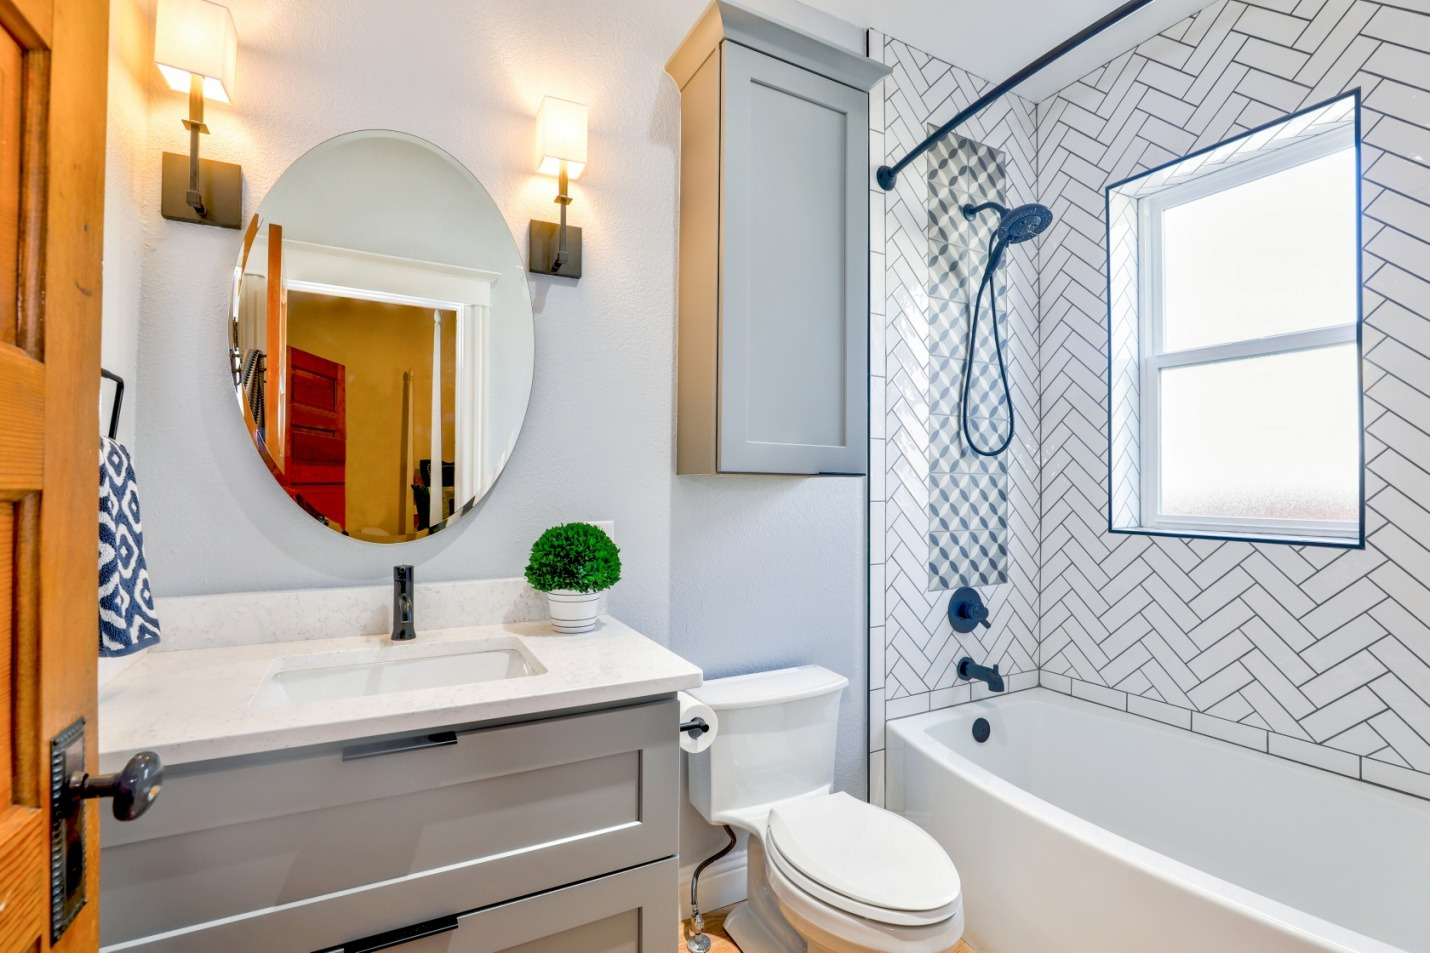 bathroom interior with toilet sink and bathtub